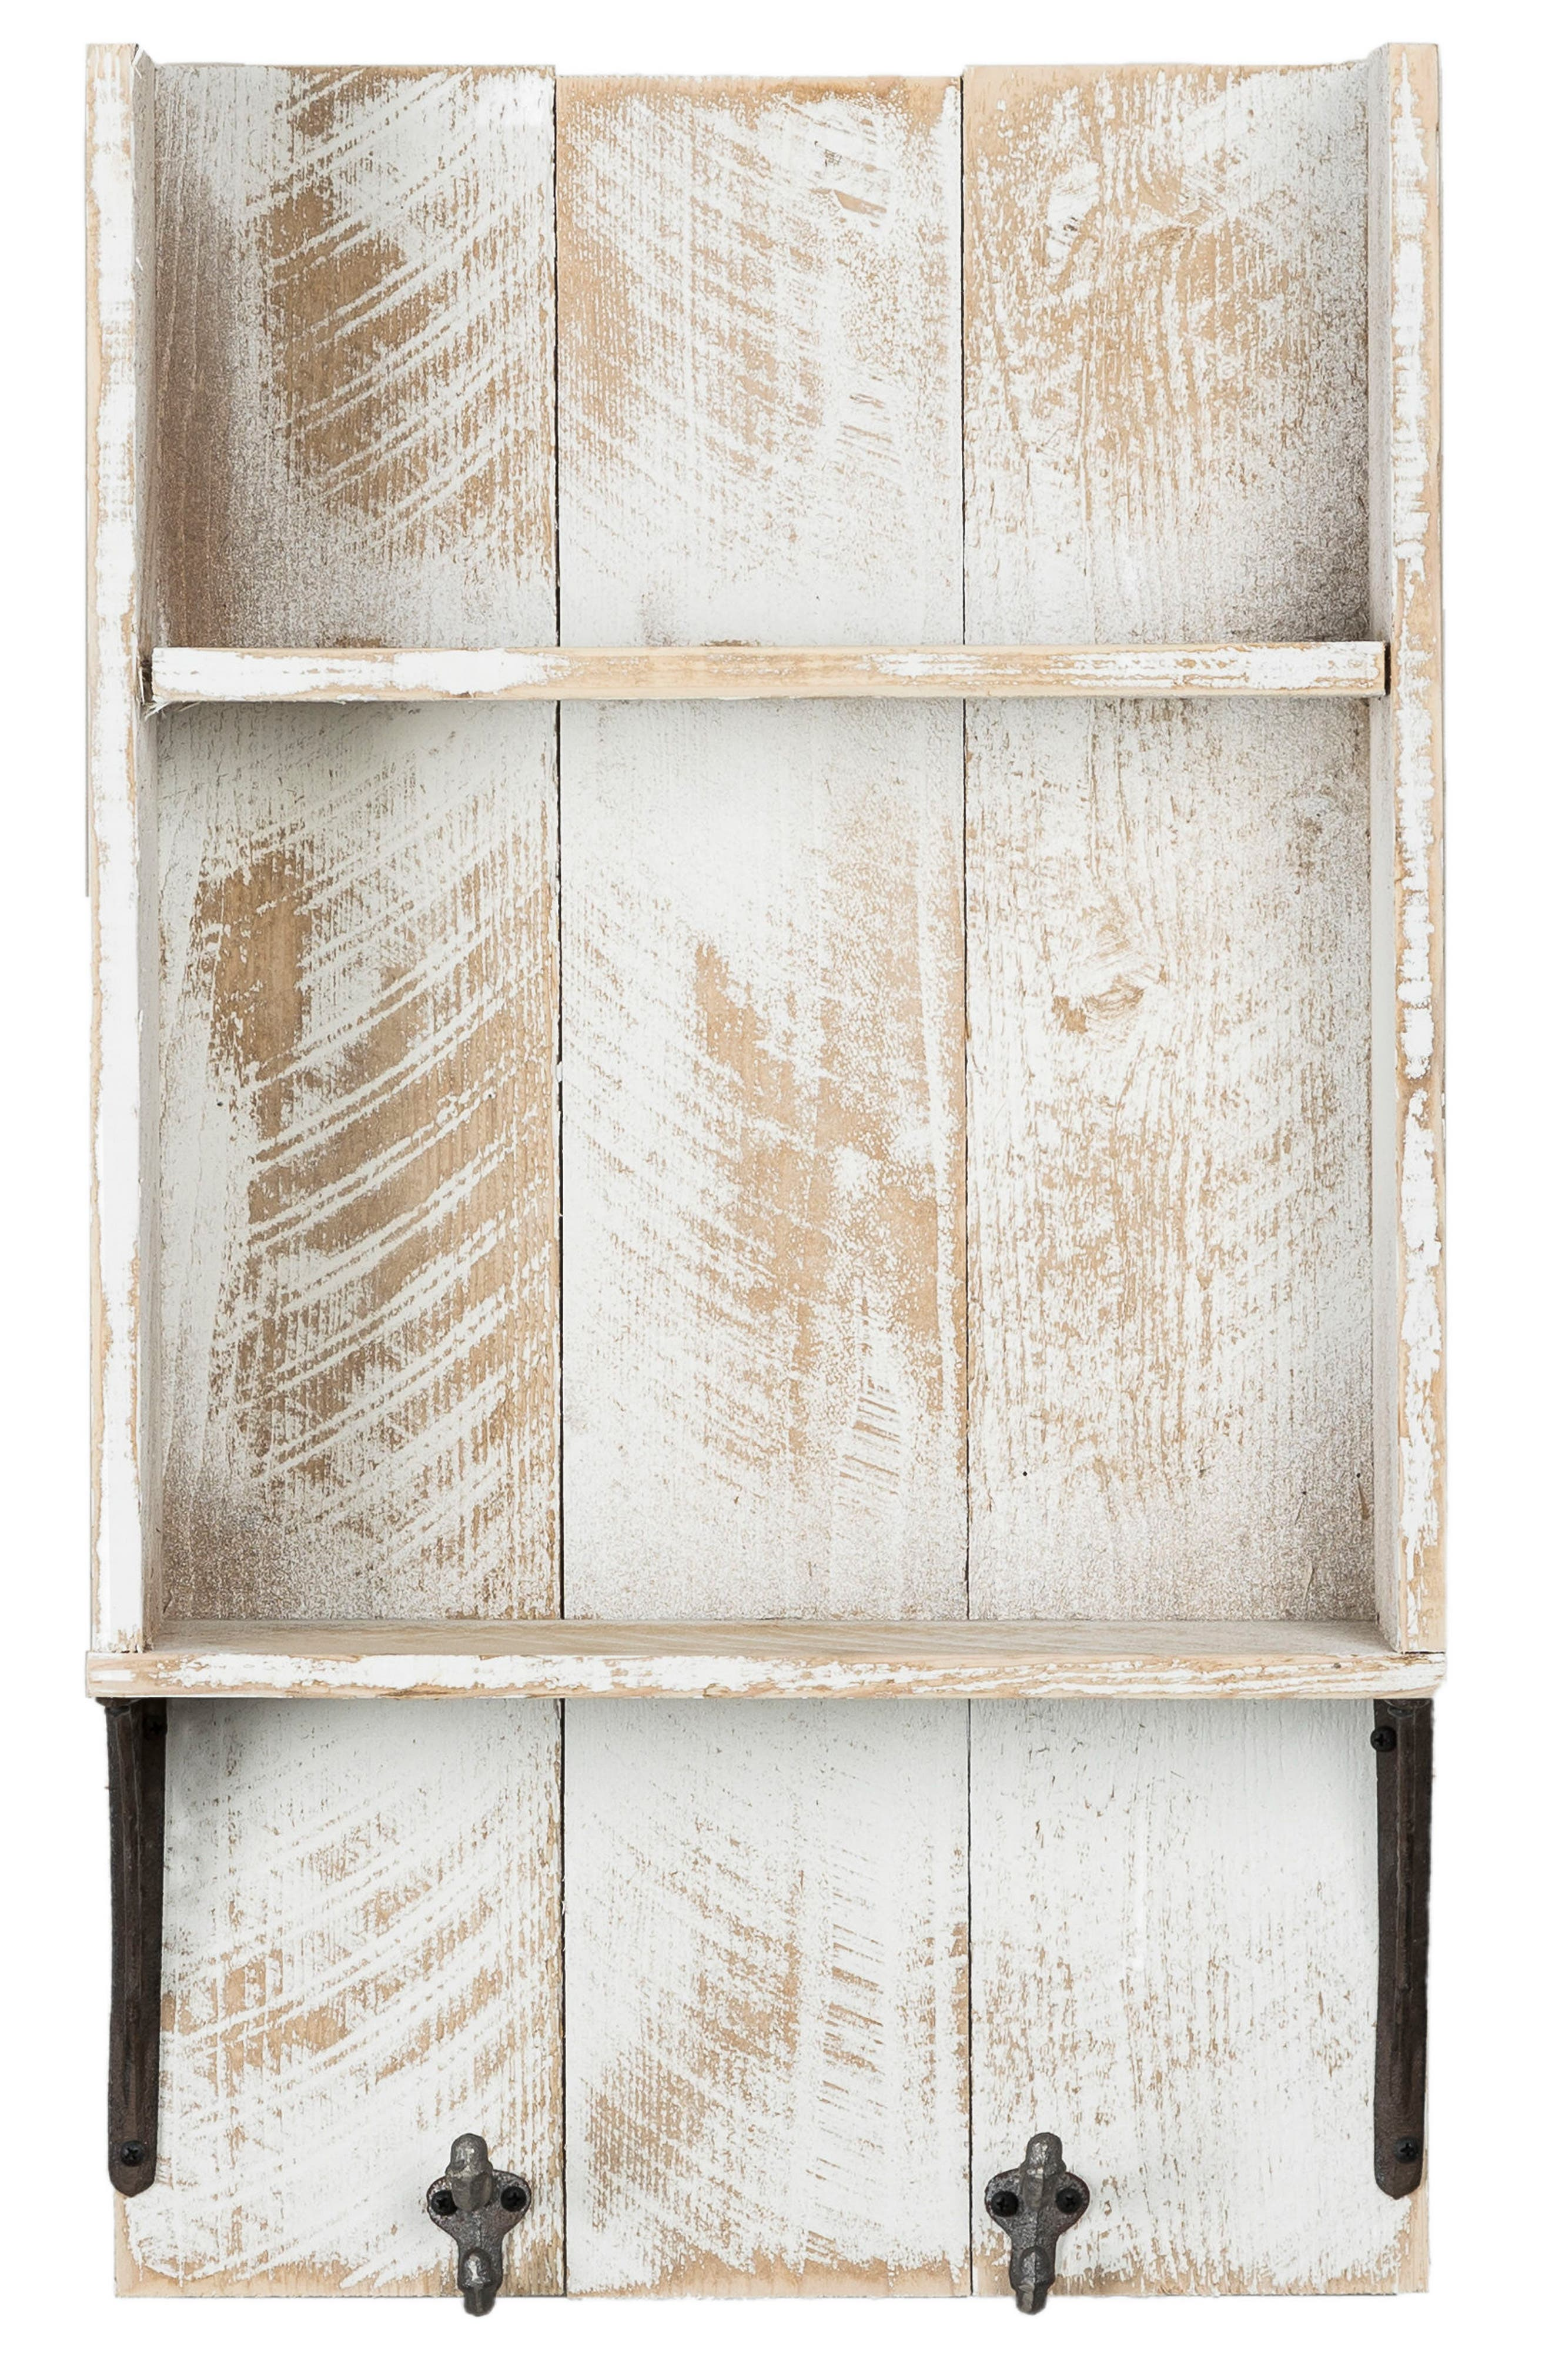 Reclaimed Wood Shelf with Hooks,                         Main,                         color, White